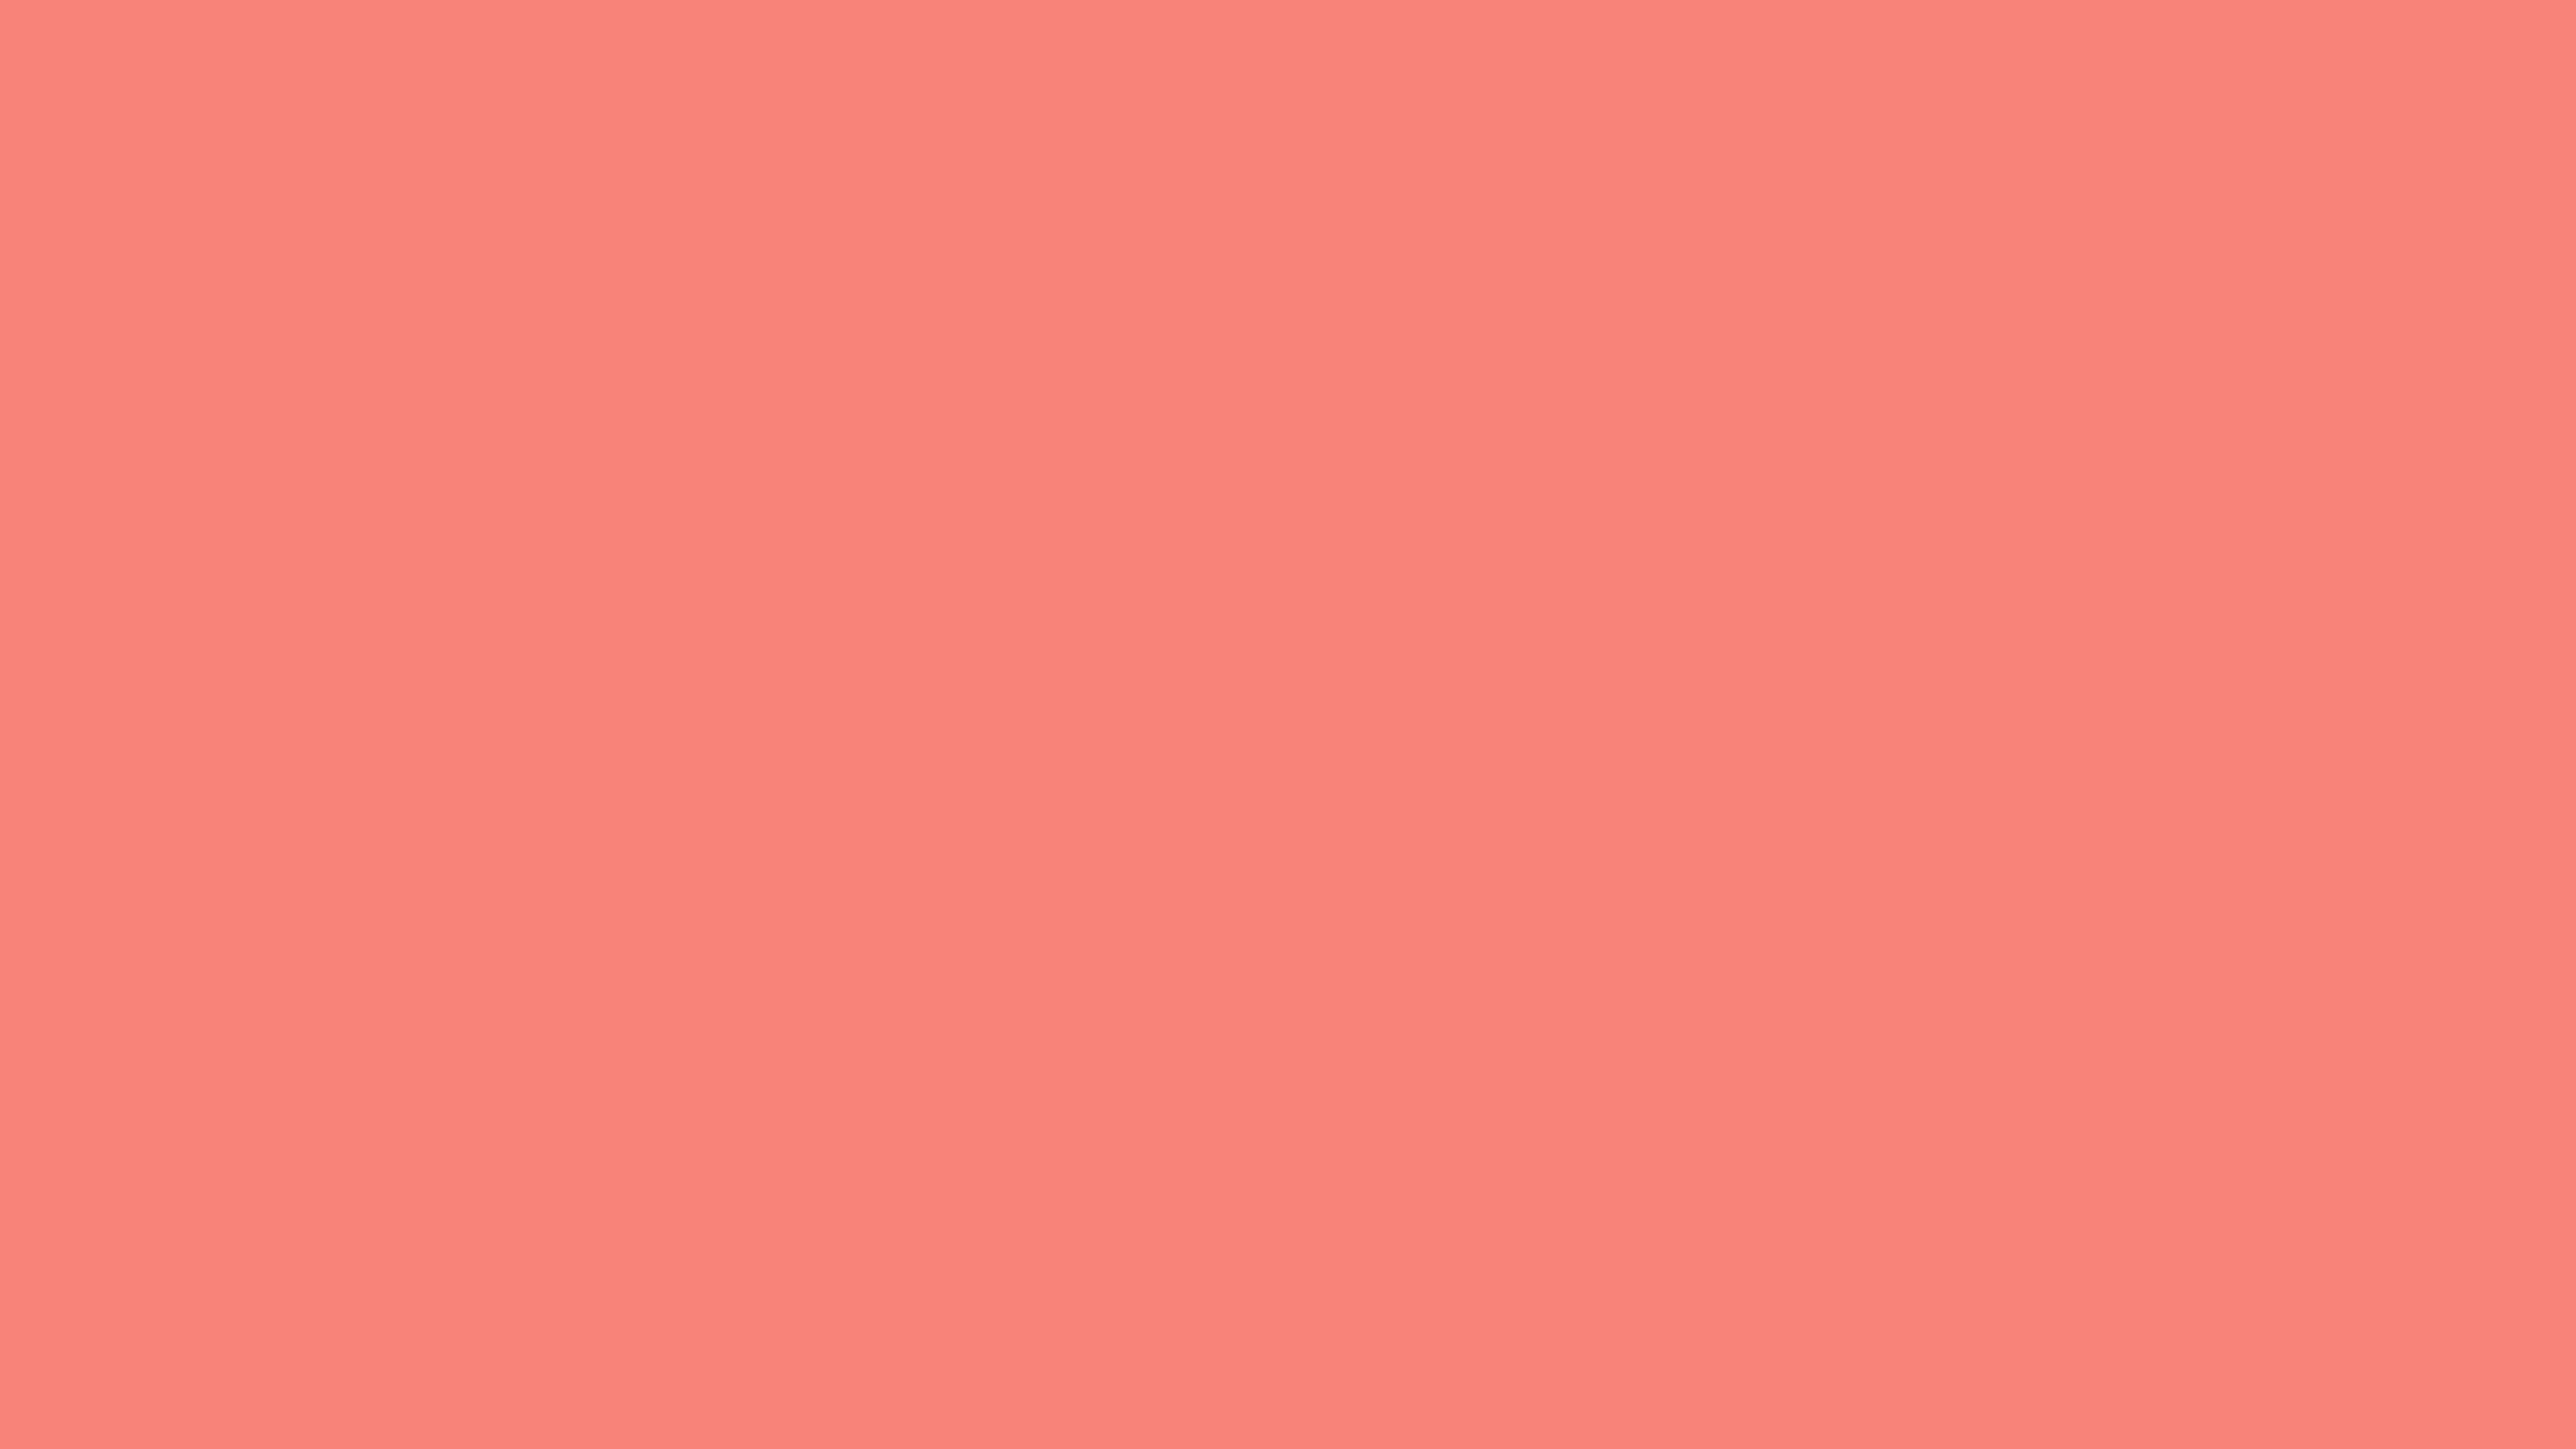 4096x2304 Coral Pink Solid Color Background